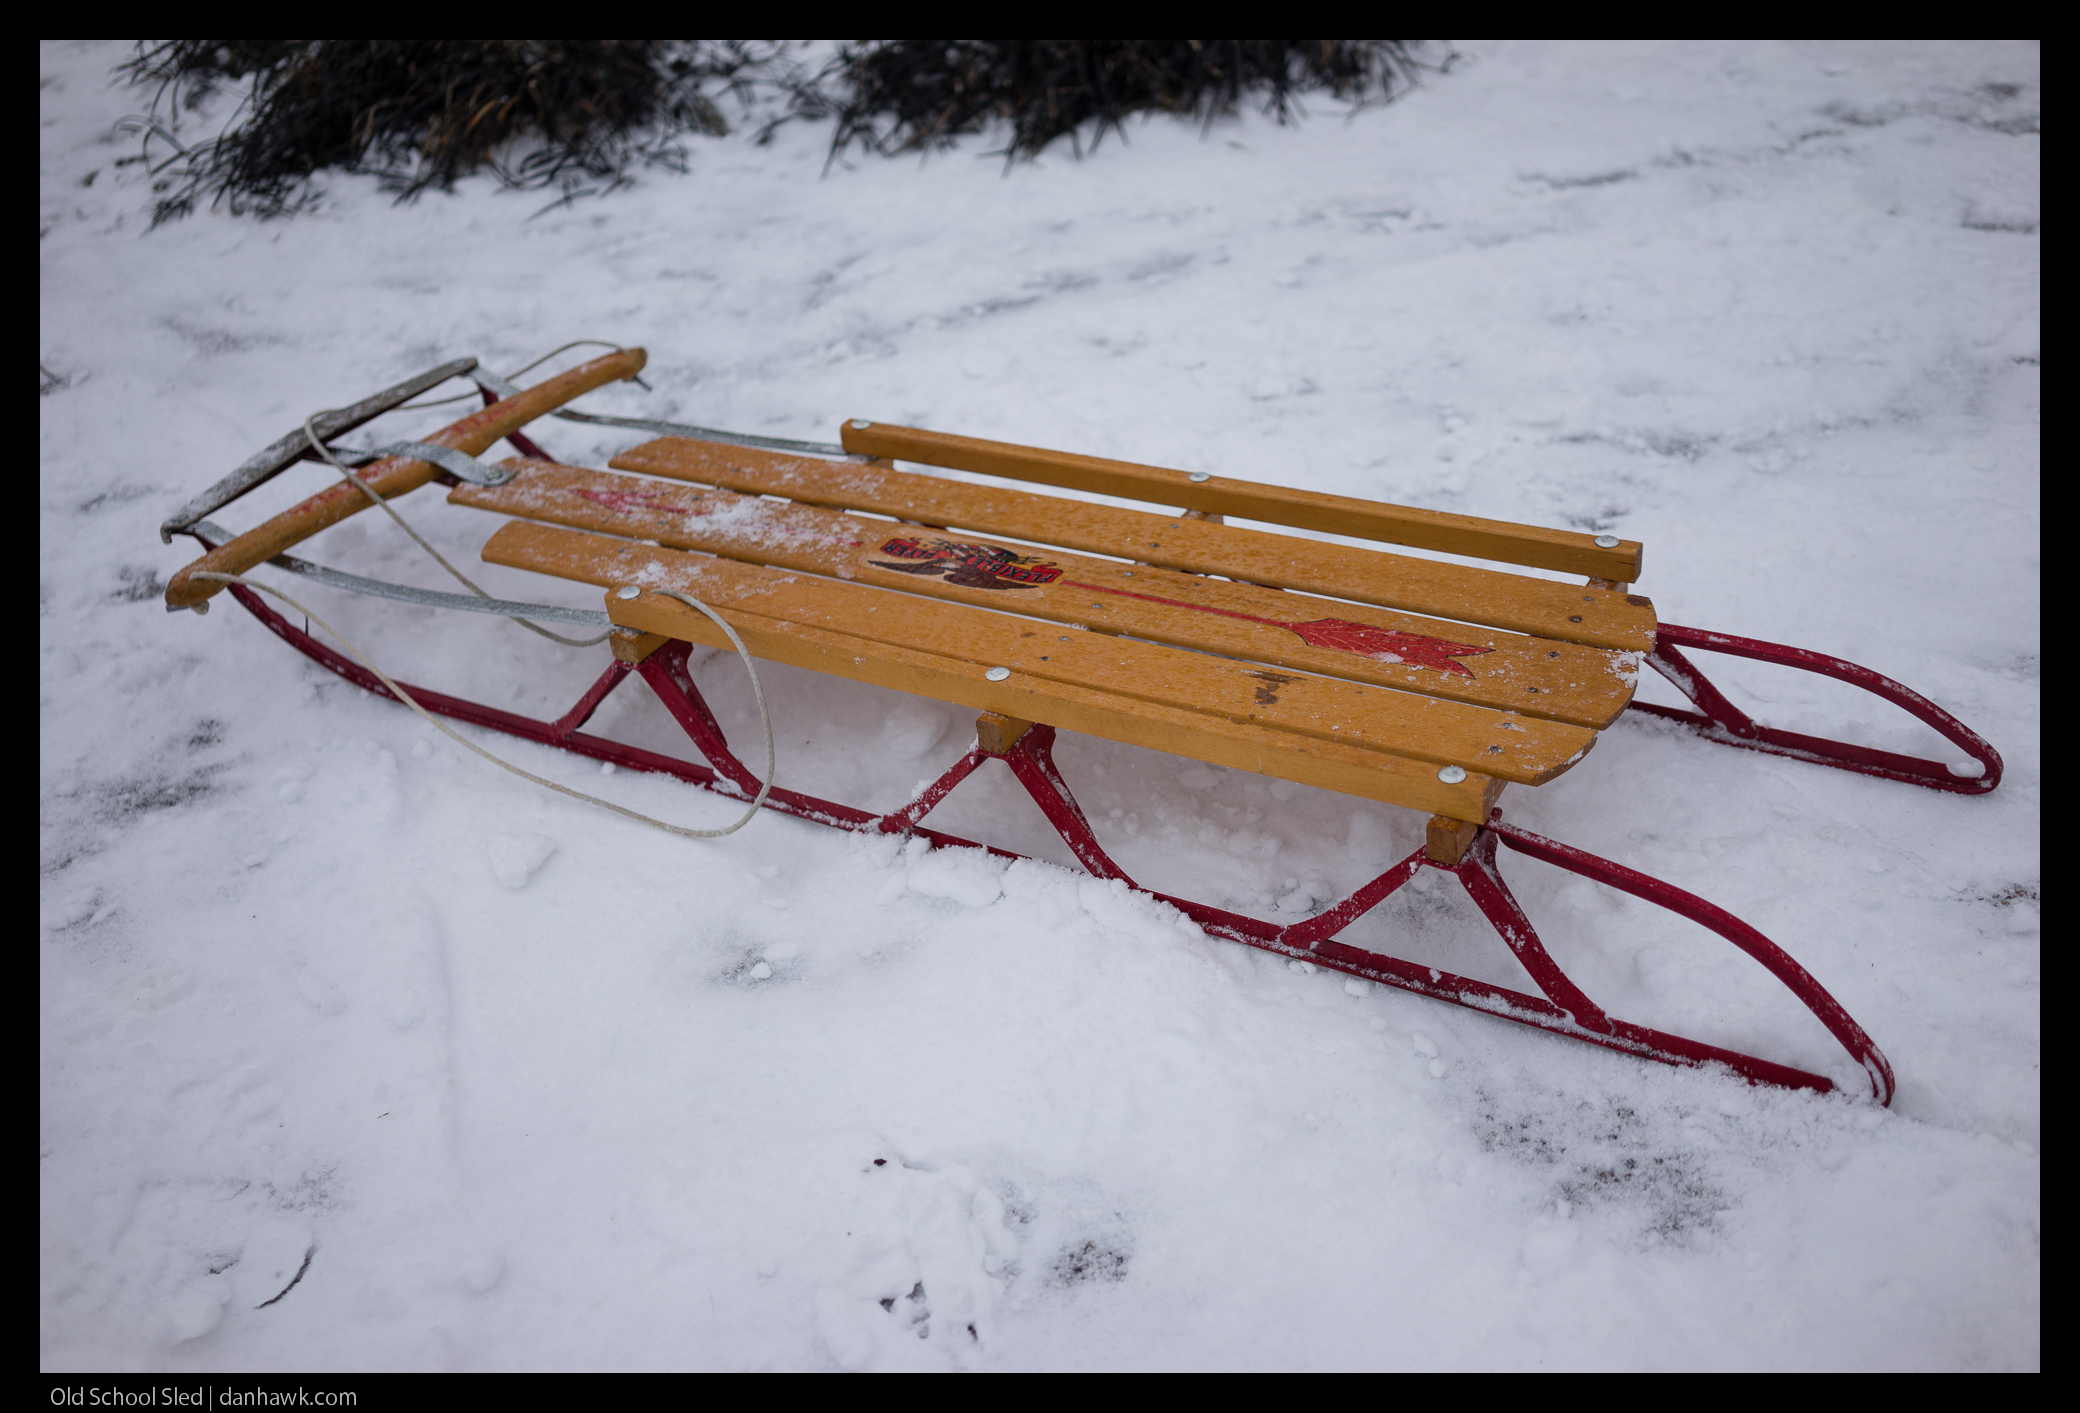 Old School Sled